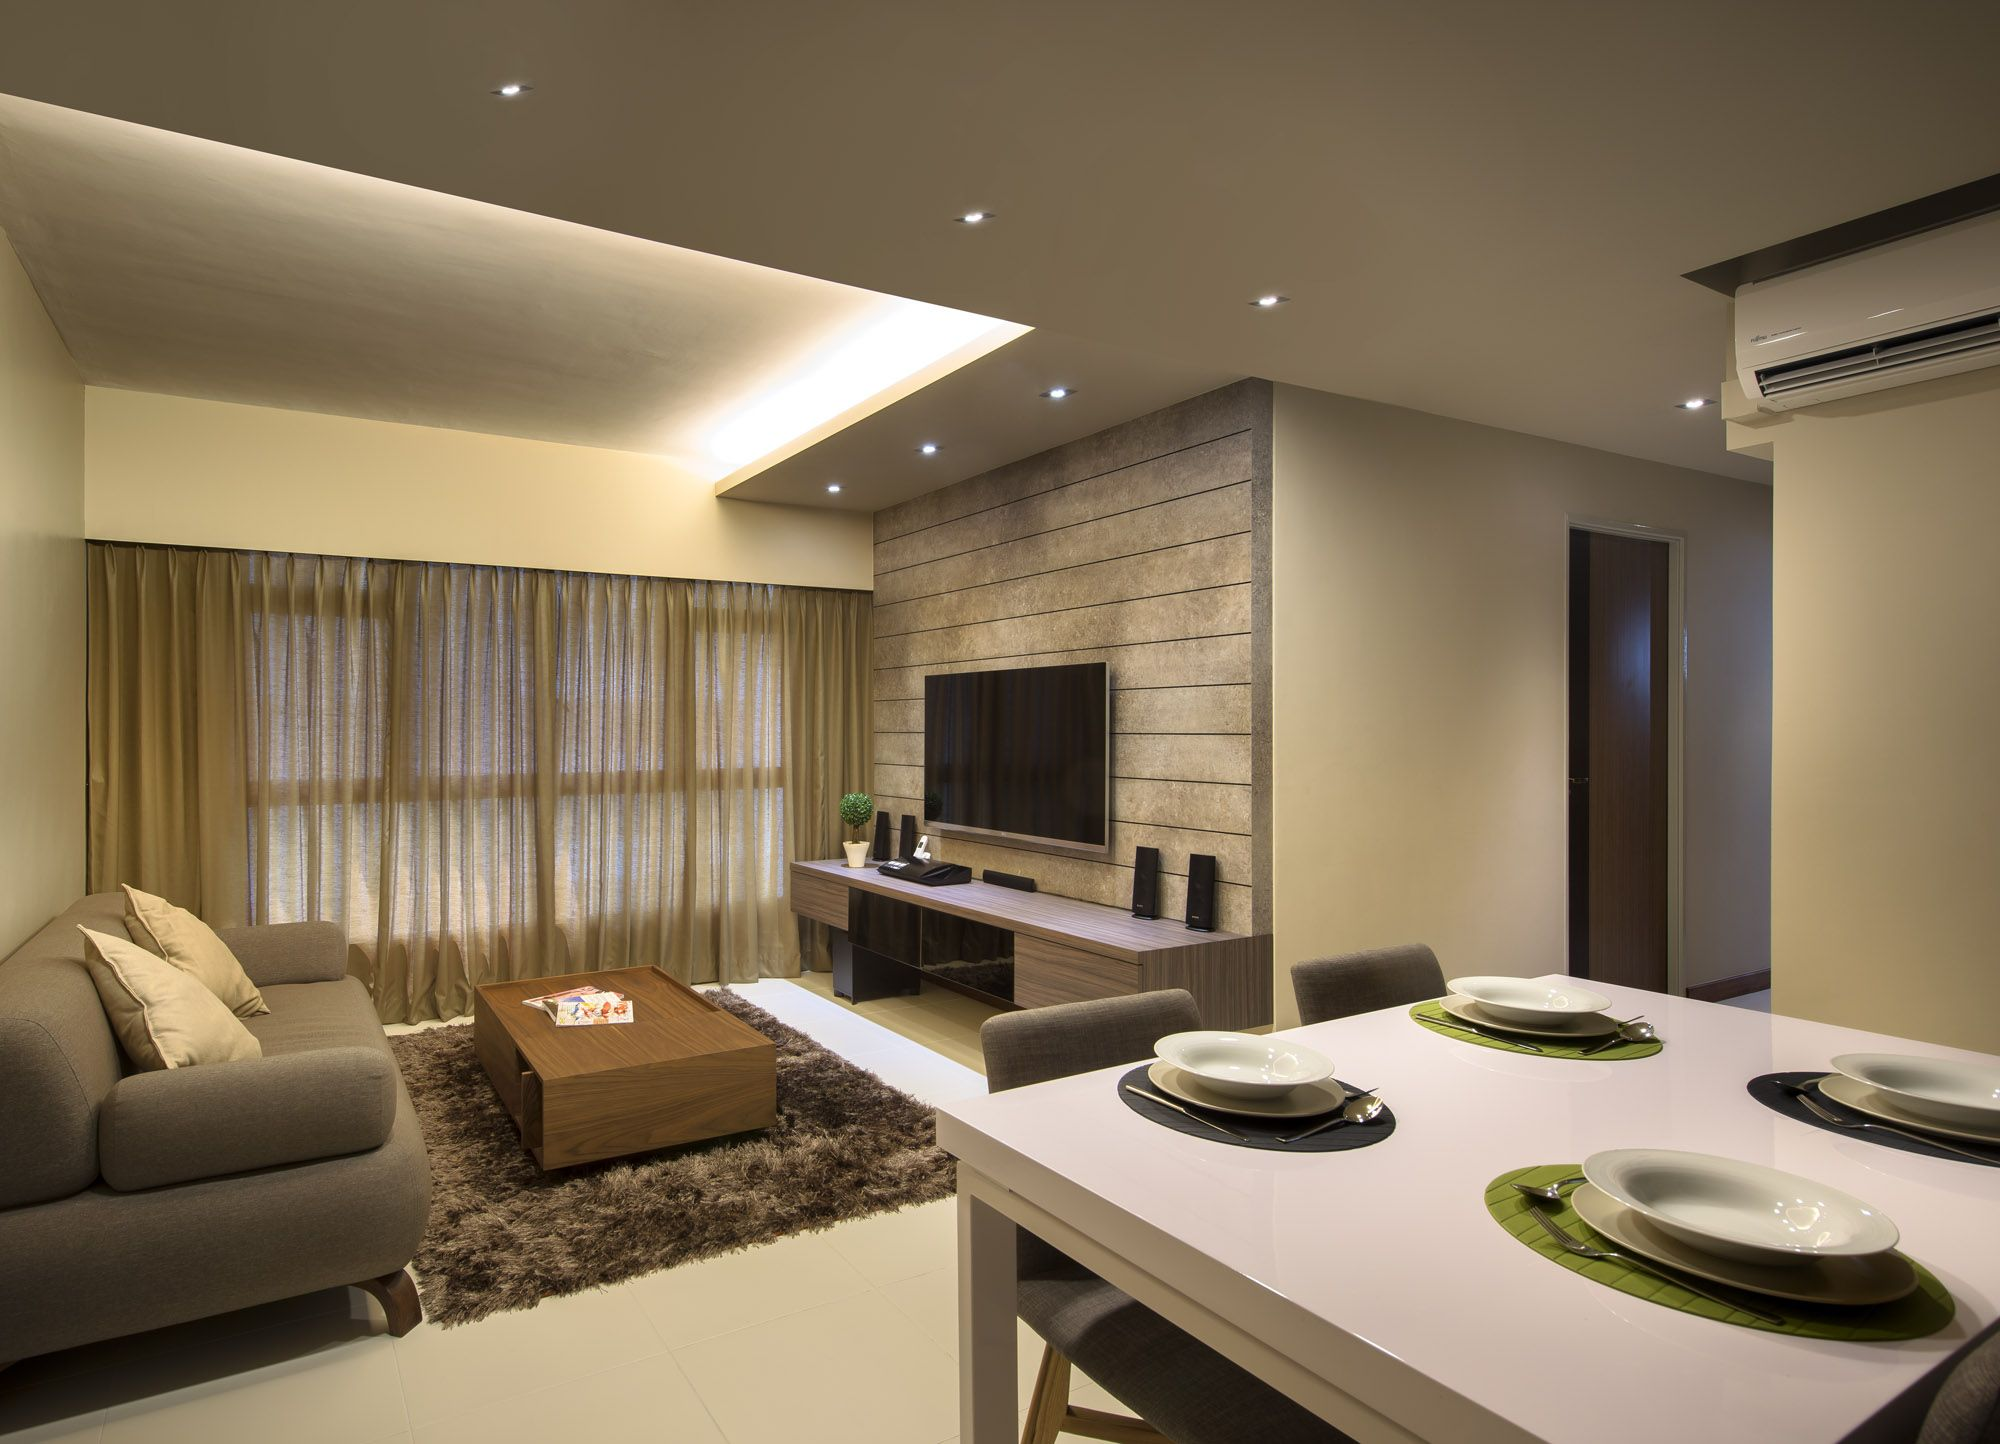 Rezt relax interior design and renovation singapore for Home design ideas singapore